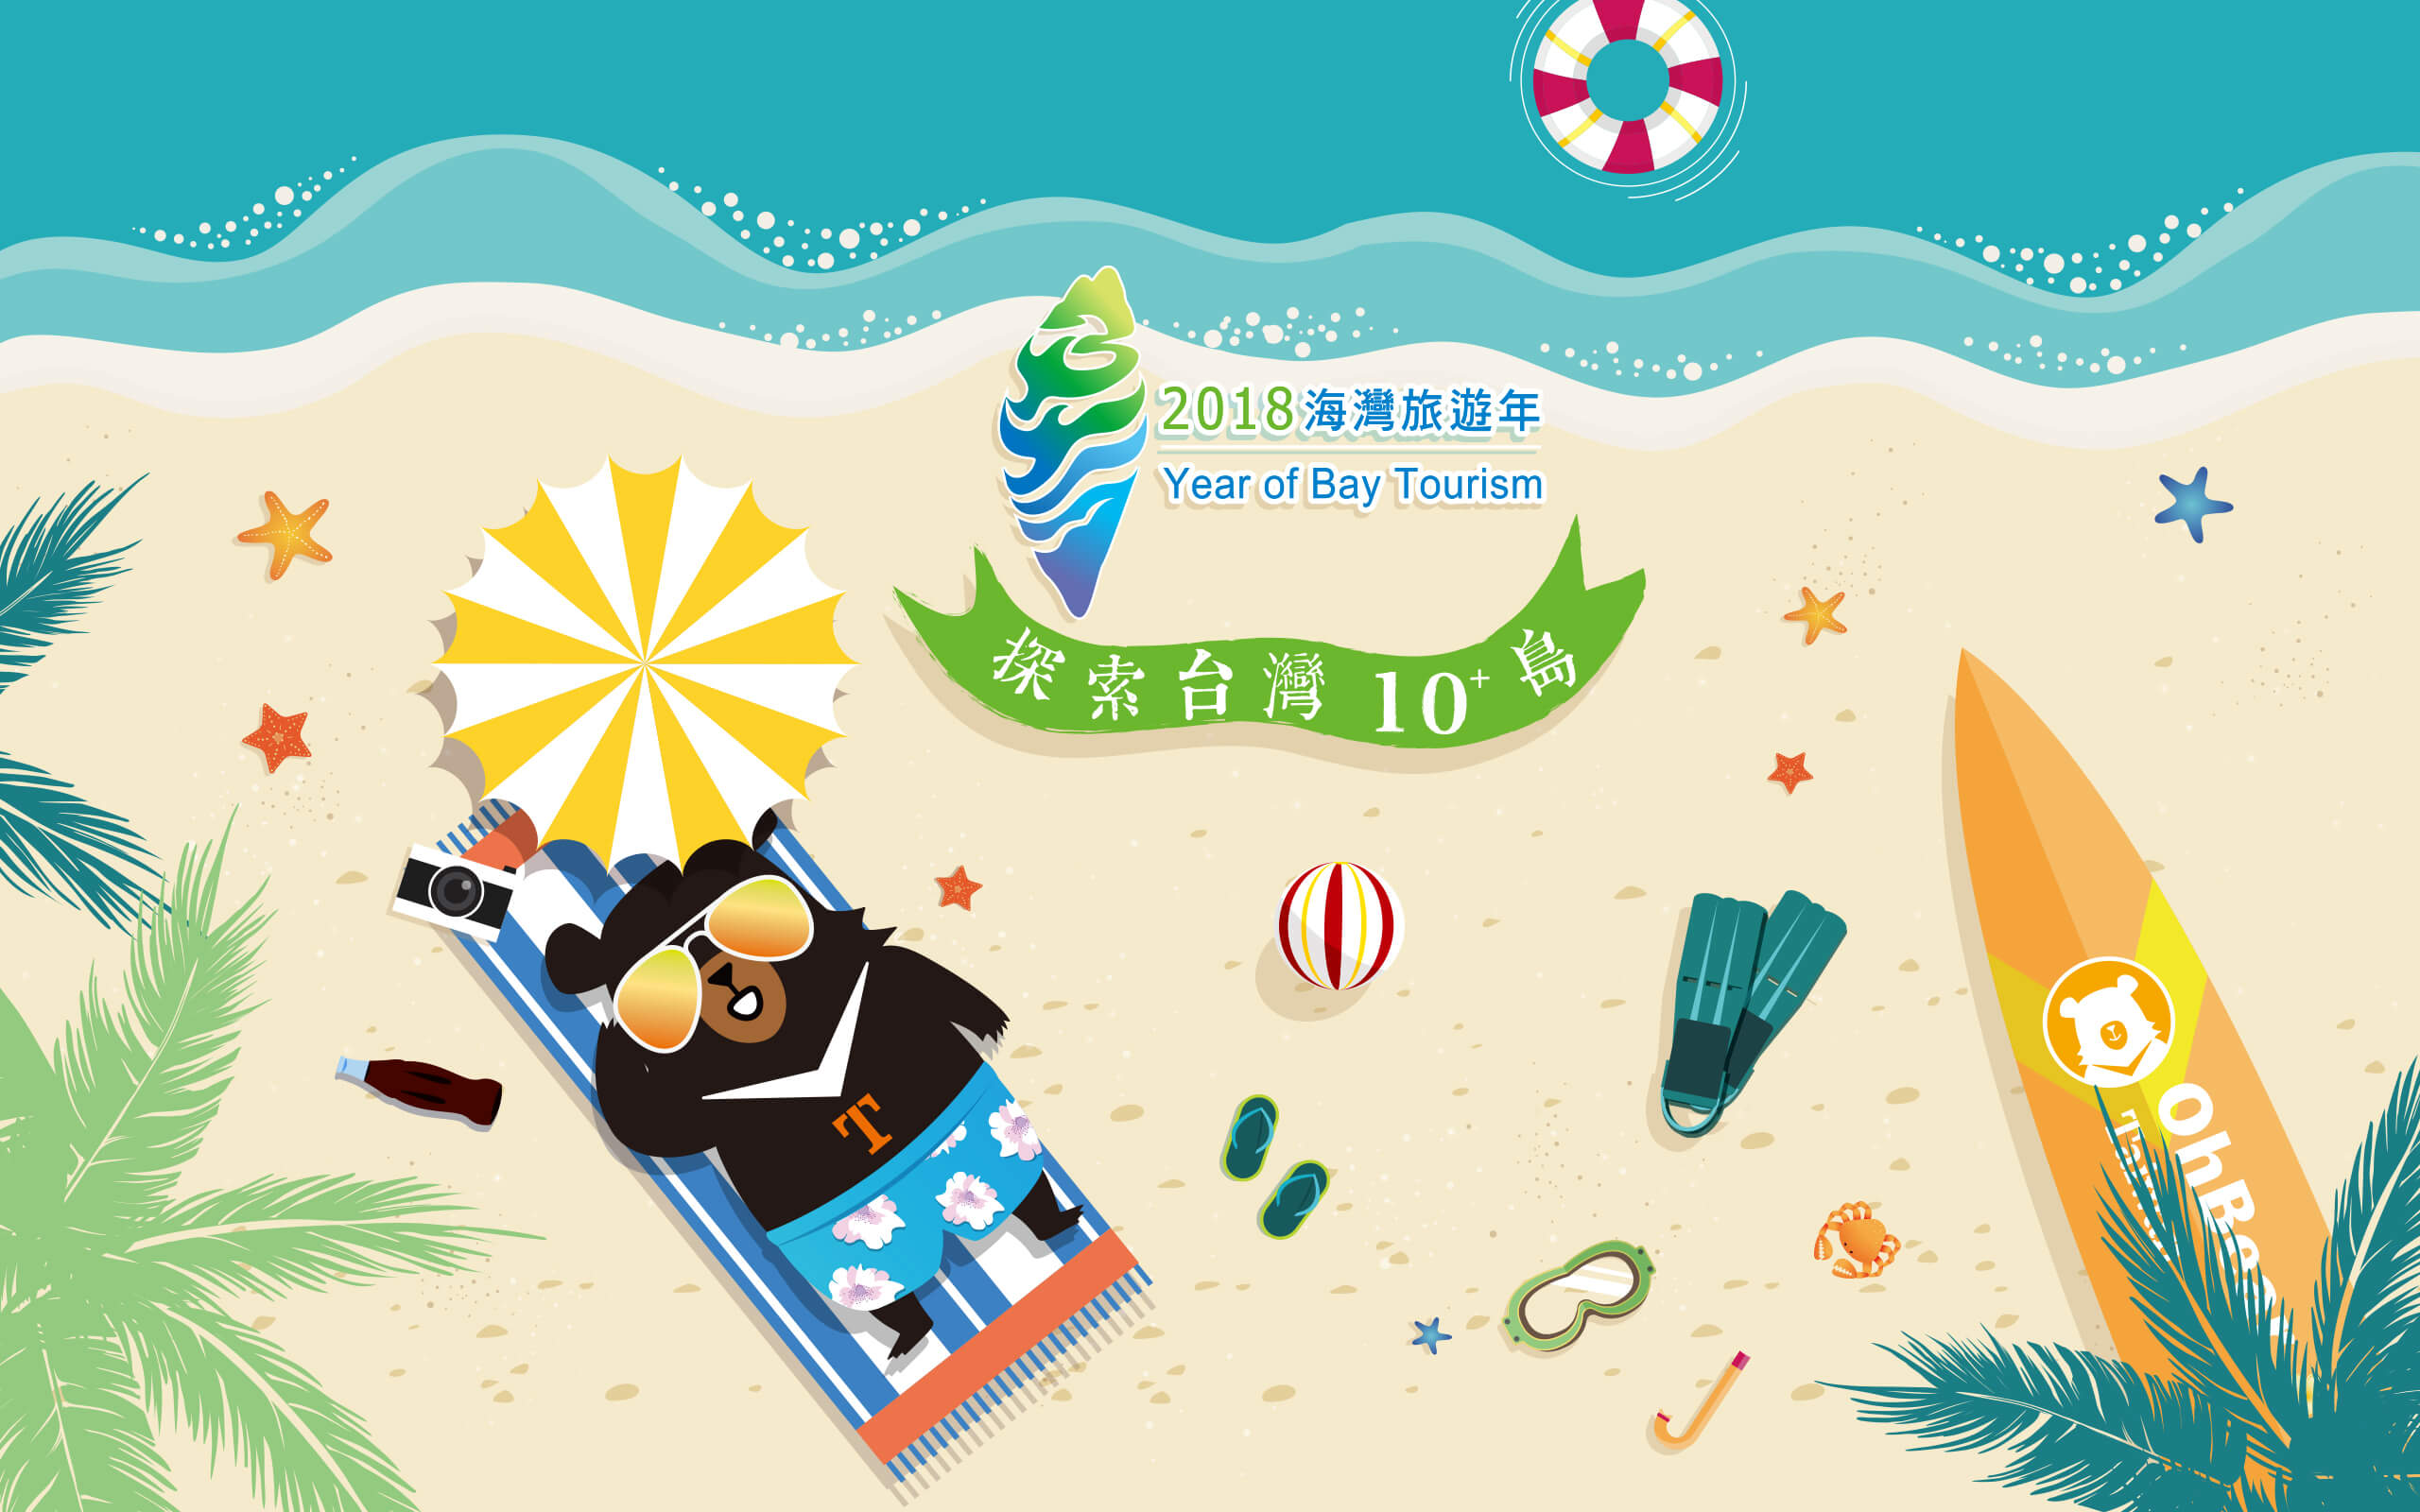 2018 Year of Bay Tourism